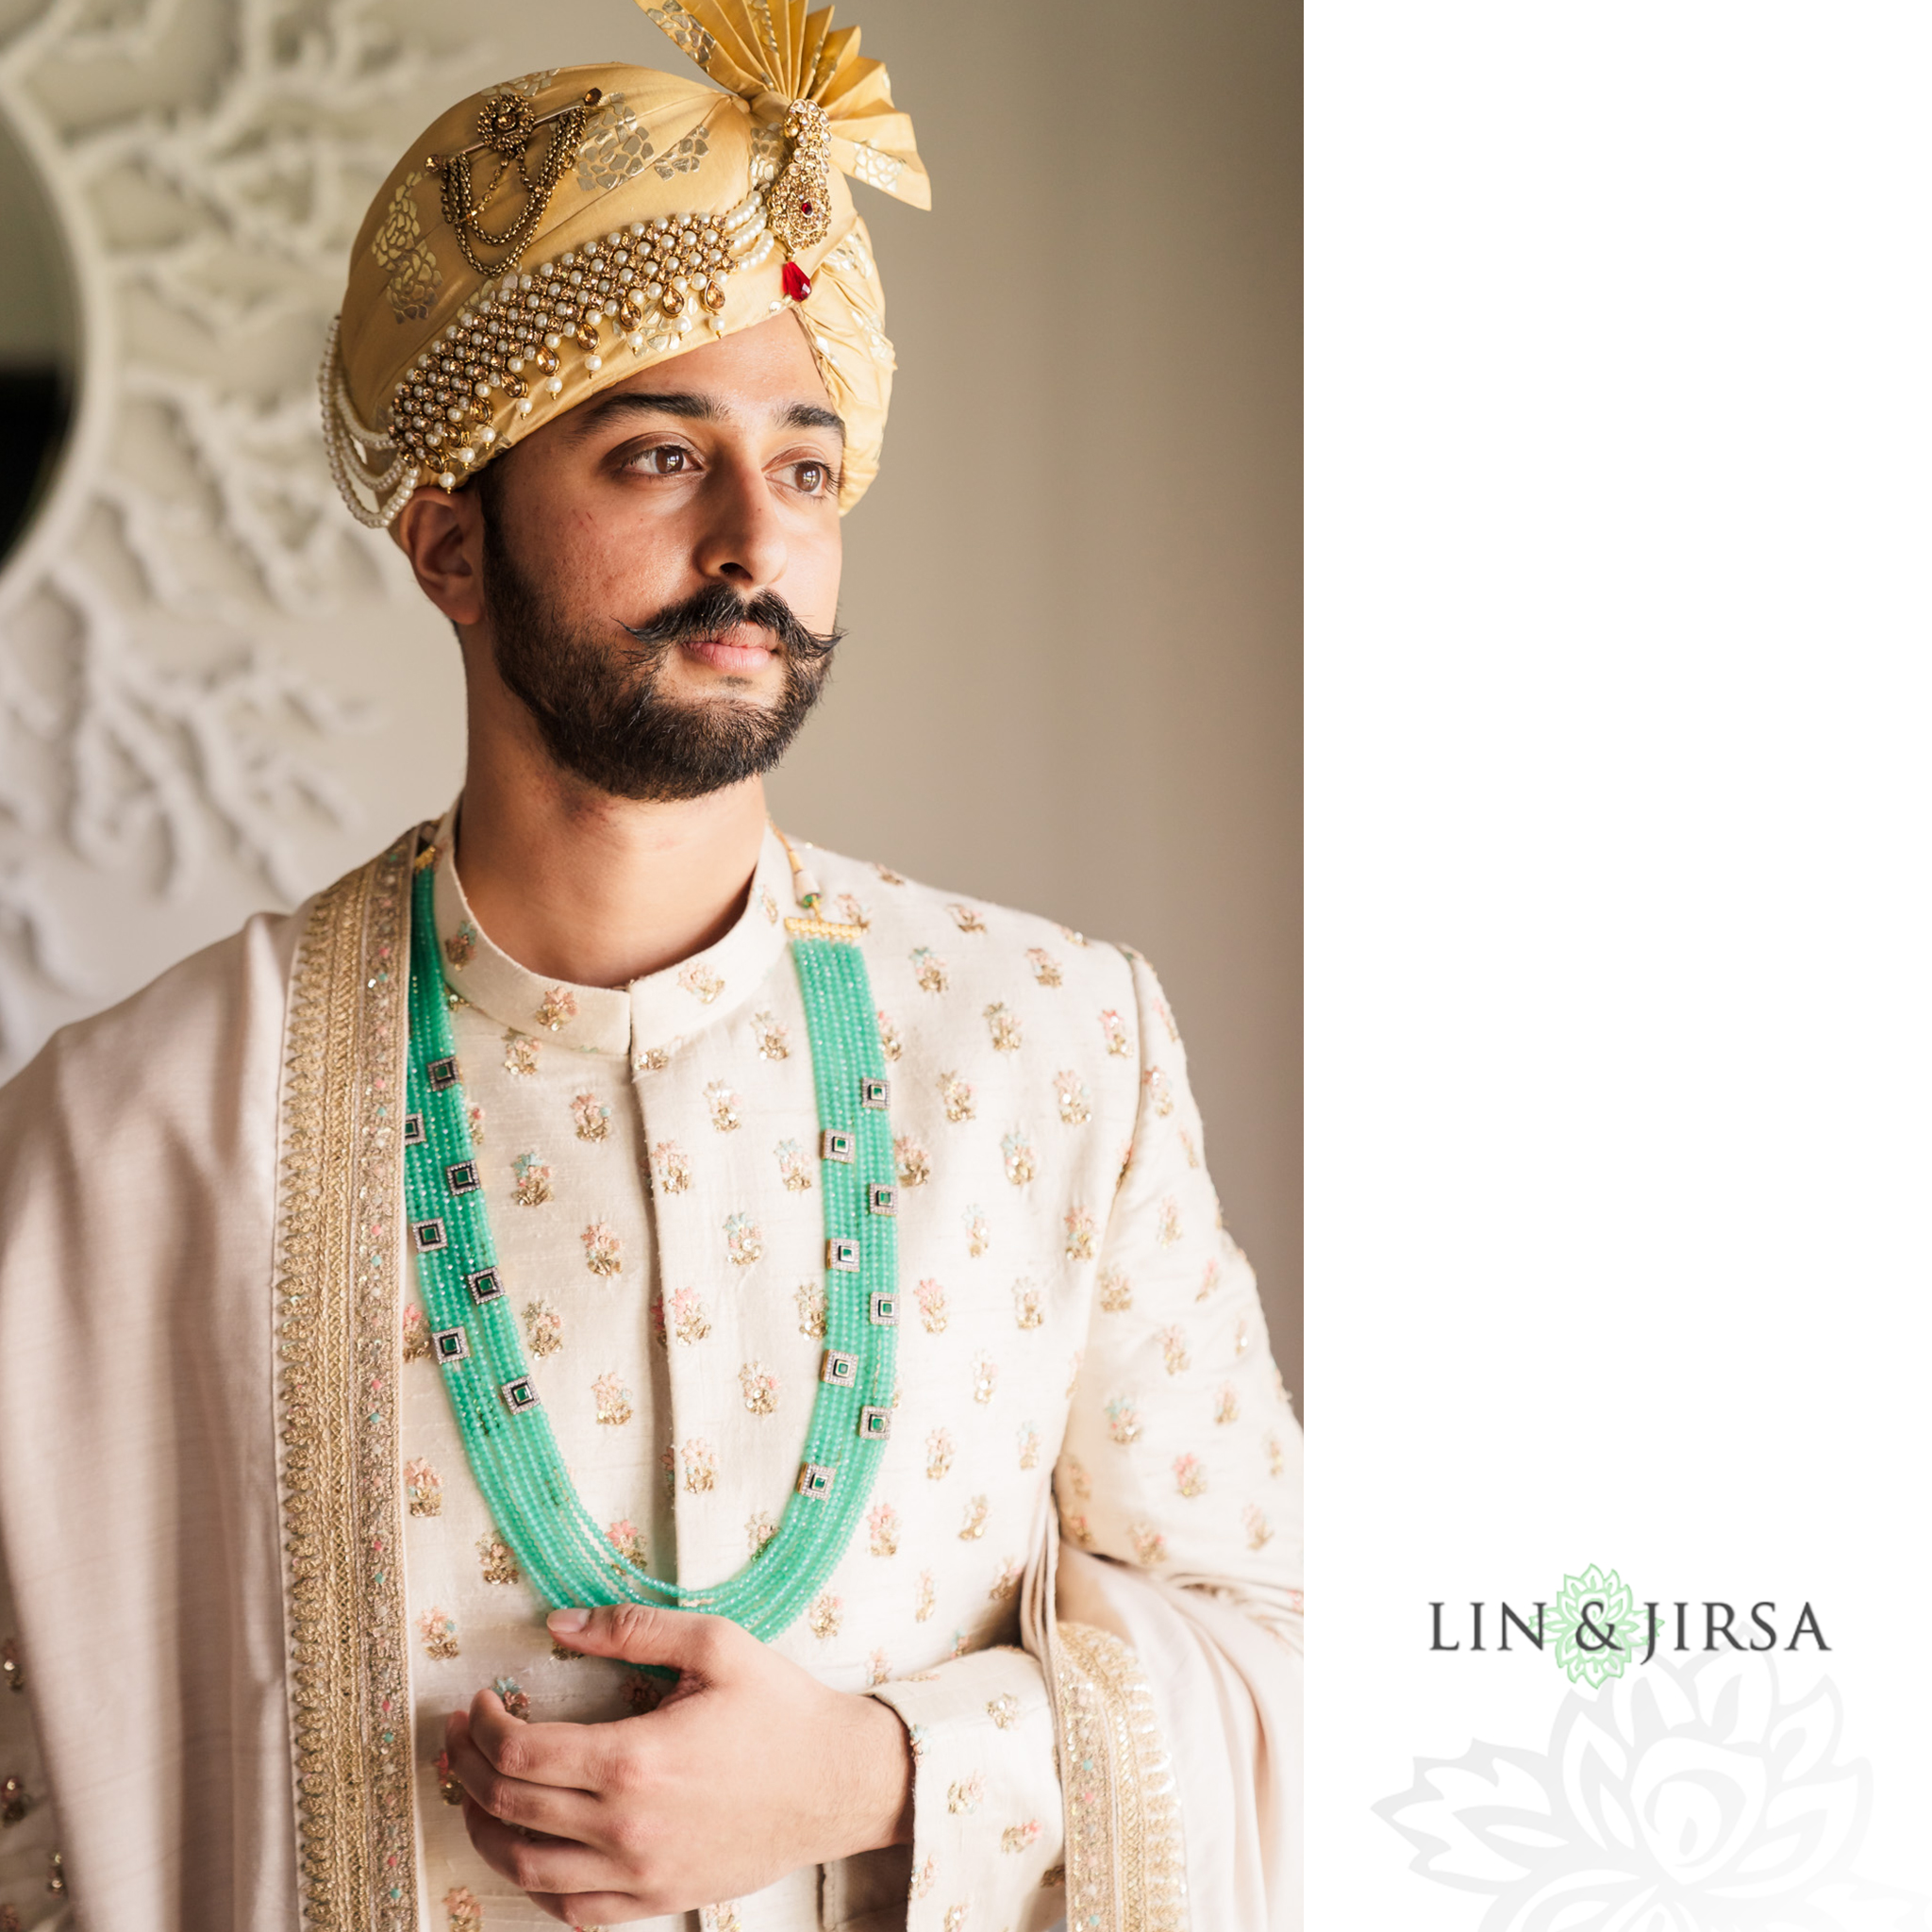 11 Turks and Caicos Travel Indian Wedding Photography